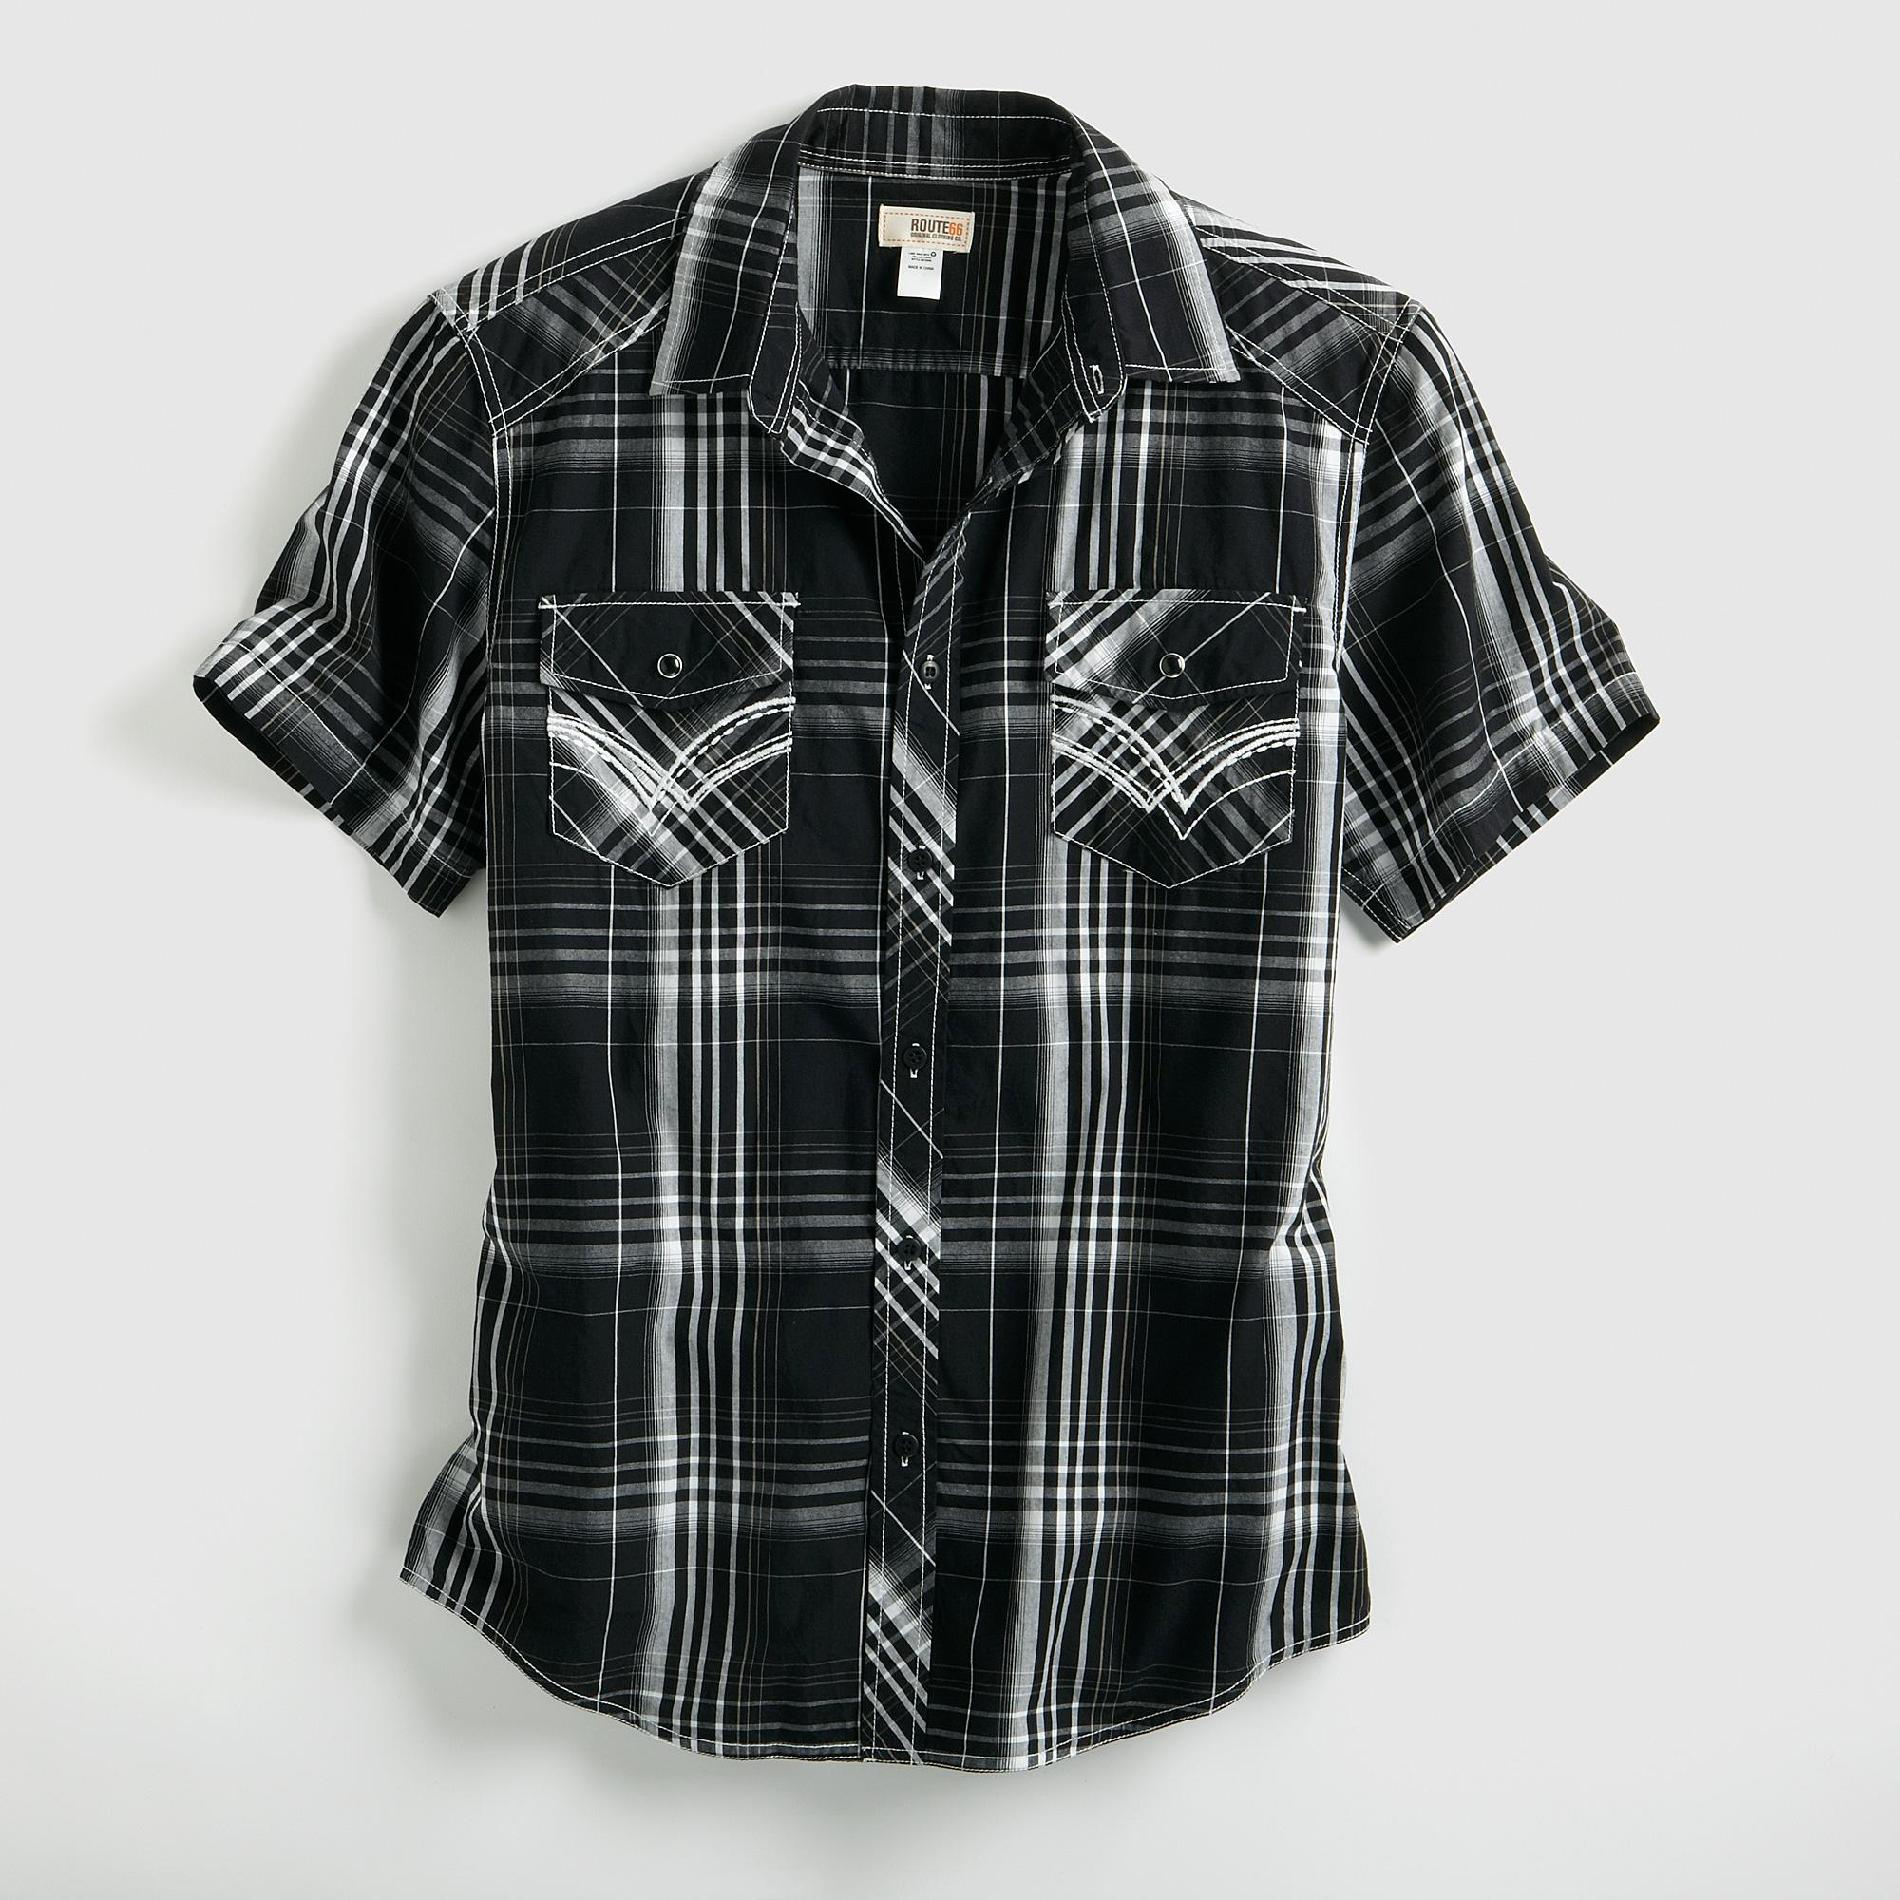 Route 66 Men's Plaid Shirt at Kmart.com